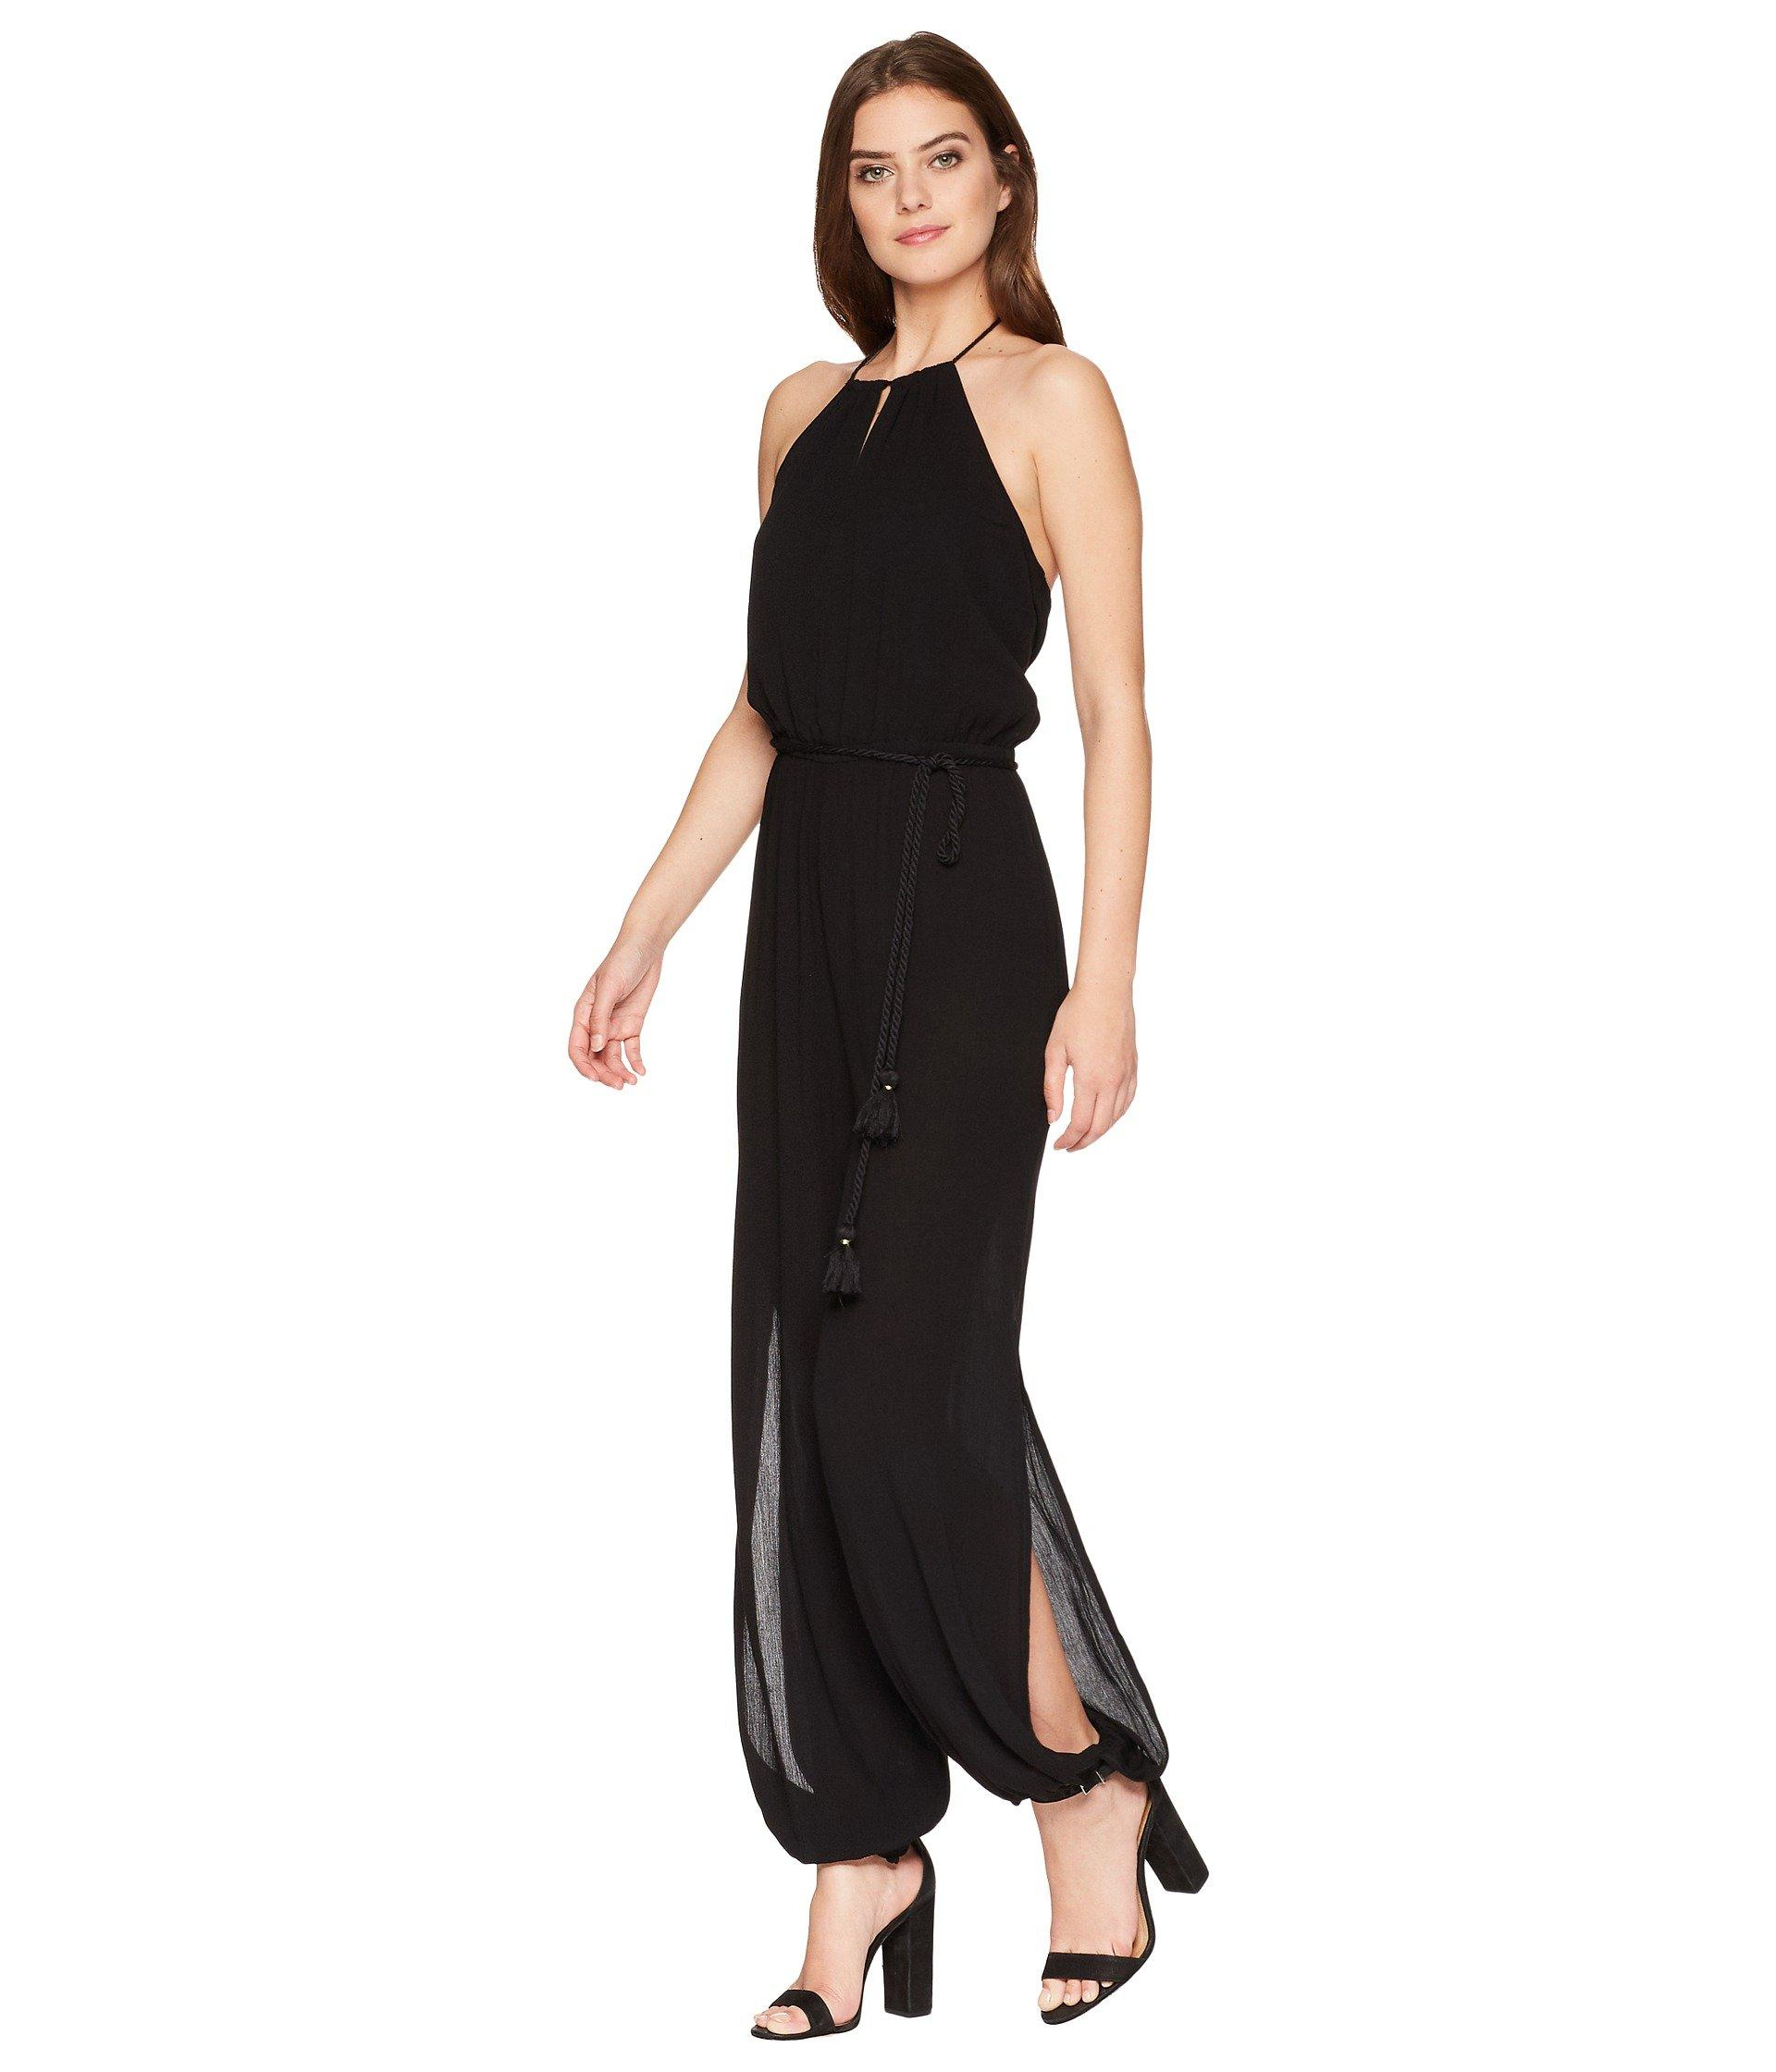 e049e8e75d6 Lyst - Jack BB Dakota Ximena Jumpsuit in Black - Save 19%